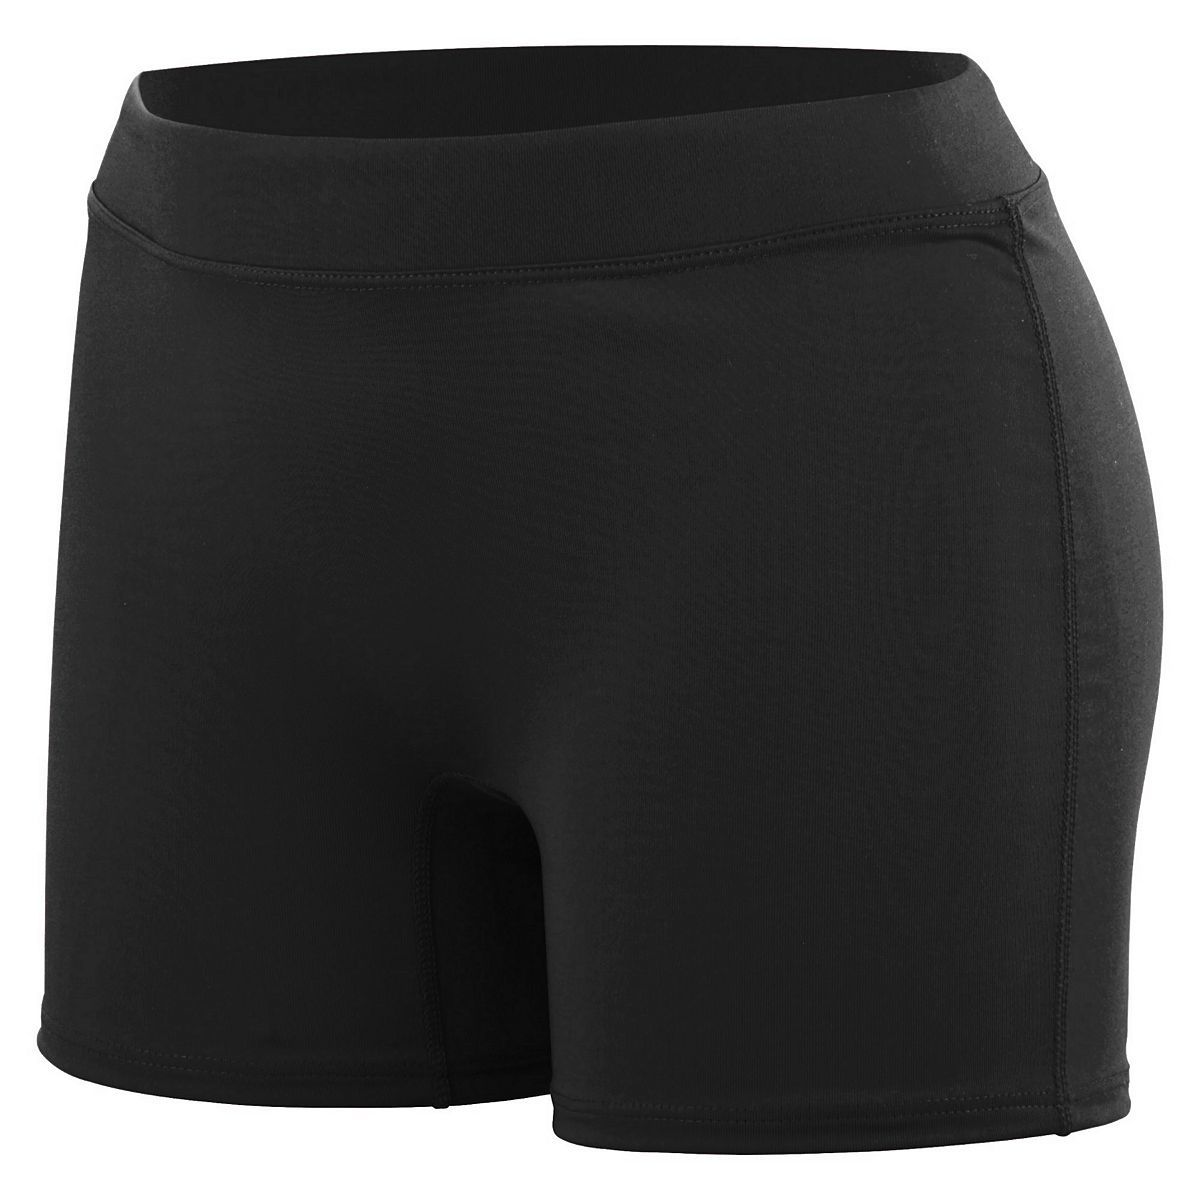 Ladies Knock Out Shorts - BLACK